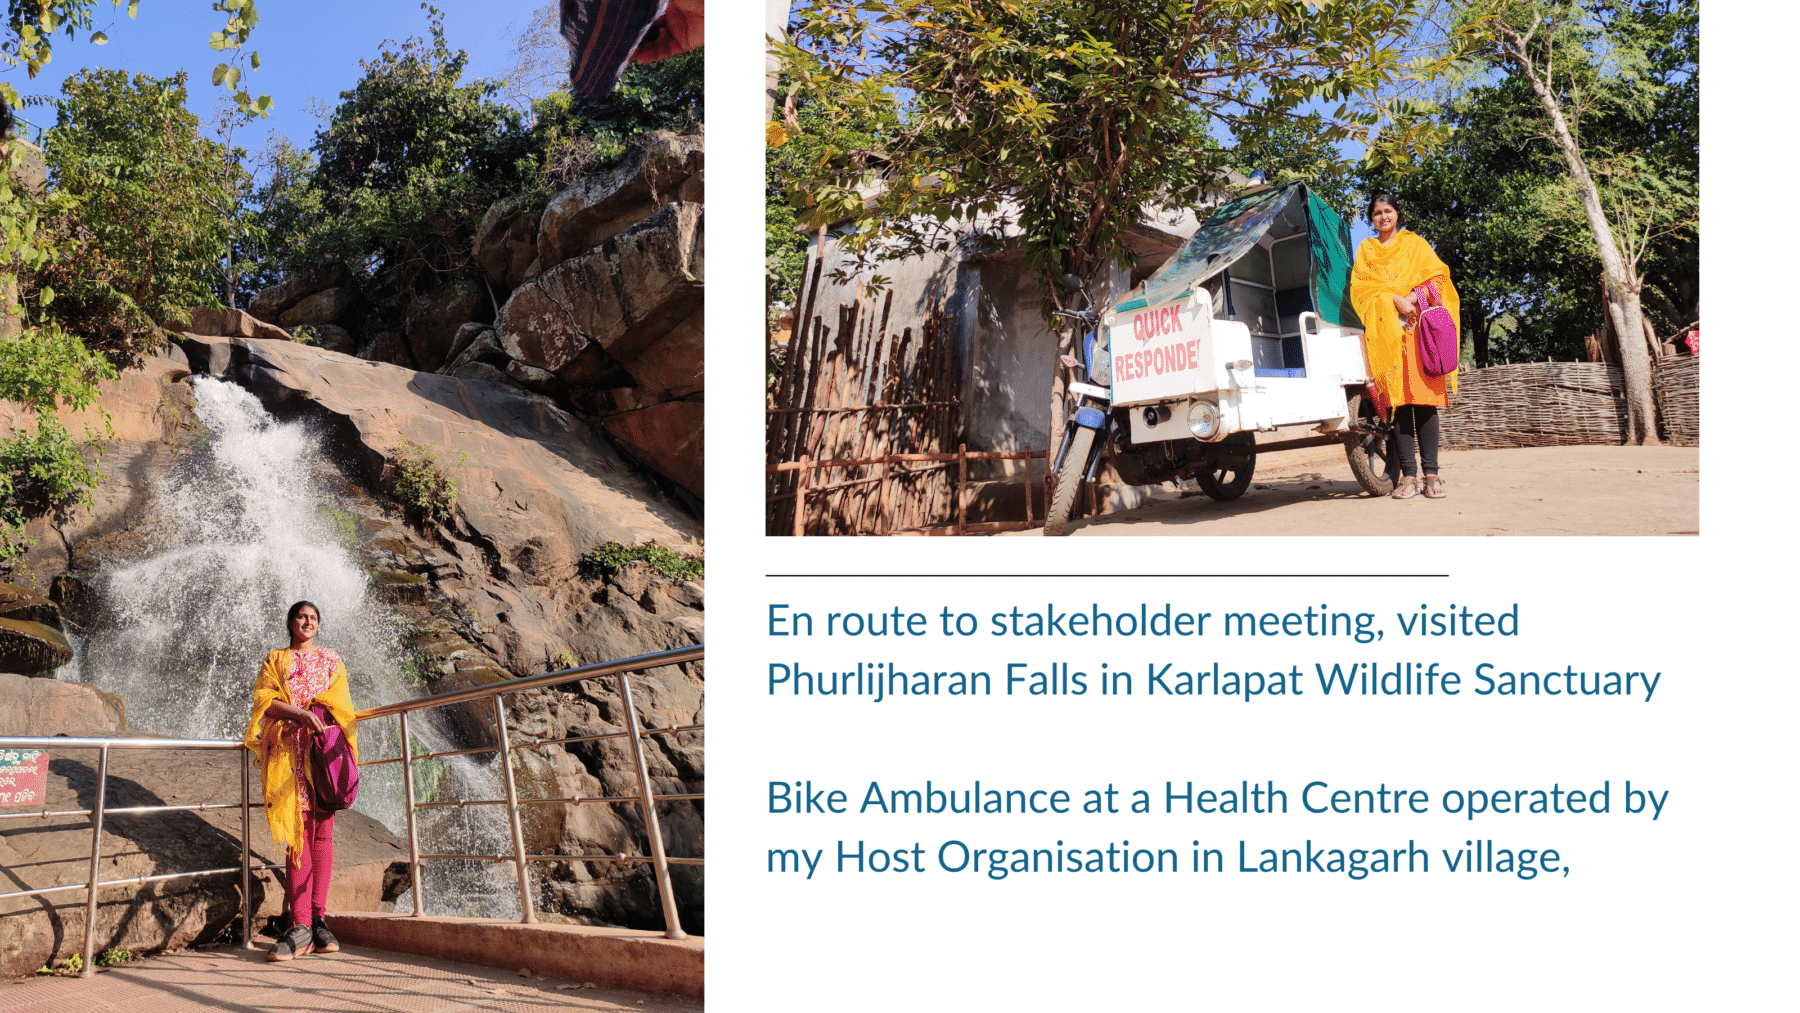 En route to stakeholder meeting, visited Phurlijharan Falls in Karlapat Wildlife Sanctuary. Bike ambulance at a health centre operated by my host organisation in Lankagarh village.